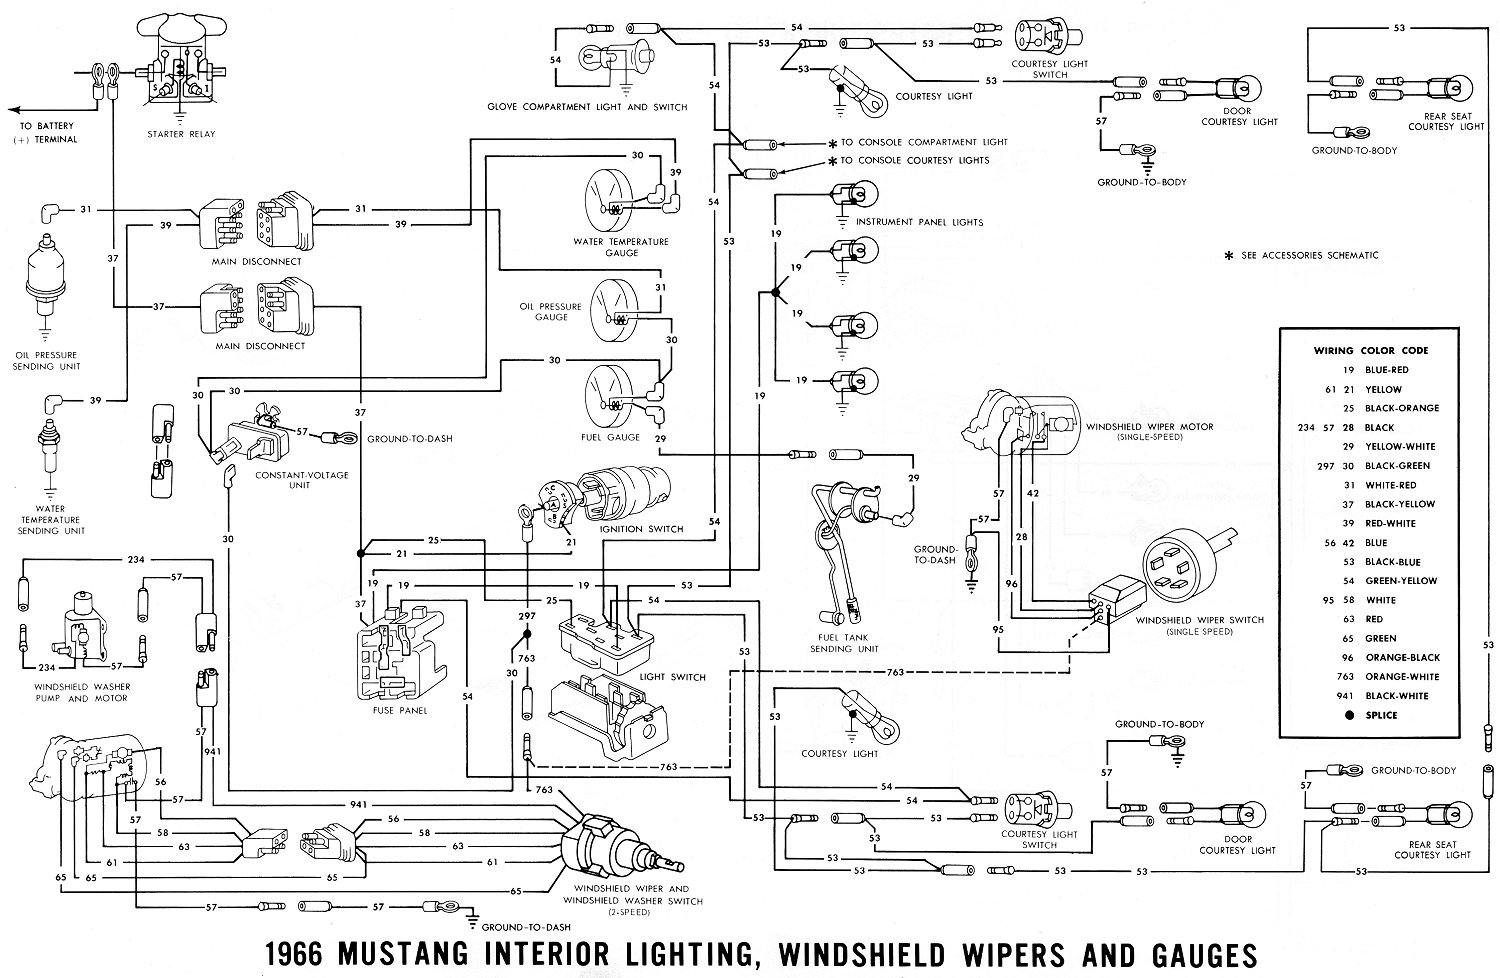 66inter1 1966 mustang wiring diagram 1966 mustang ignition wiring diagram 1965 ford mustang wiring diagrams at suagrazia.org